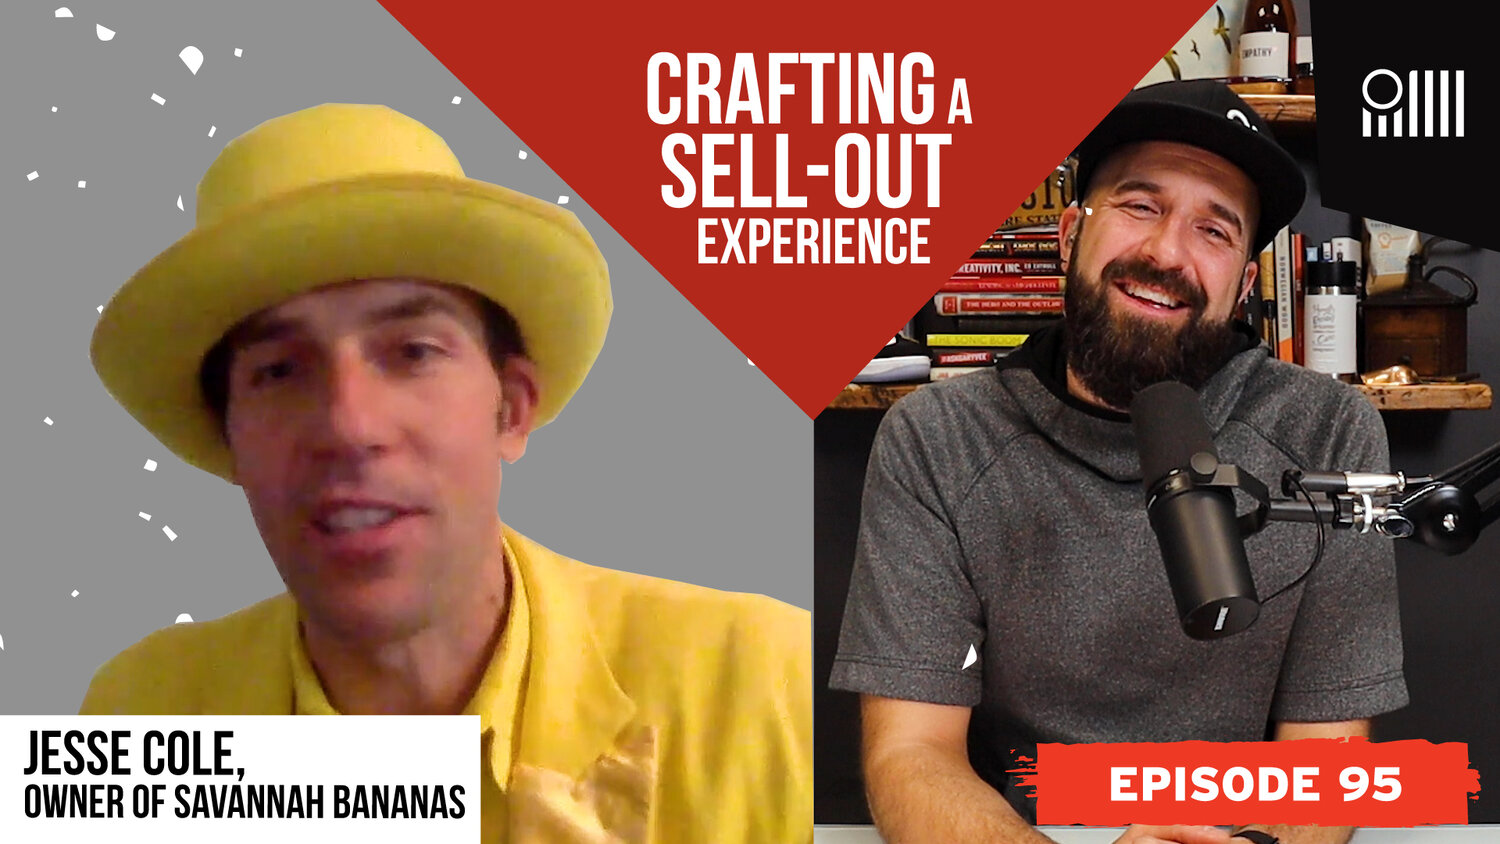 Crafting A SELL-OUT Experience with Jesse Cole, Owner of the Savannah Bananas